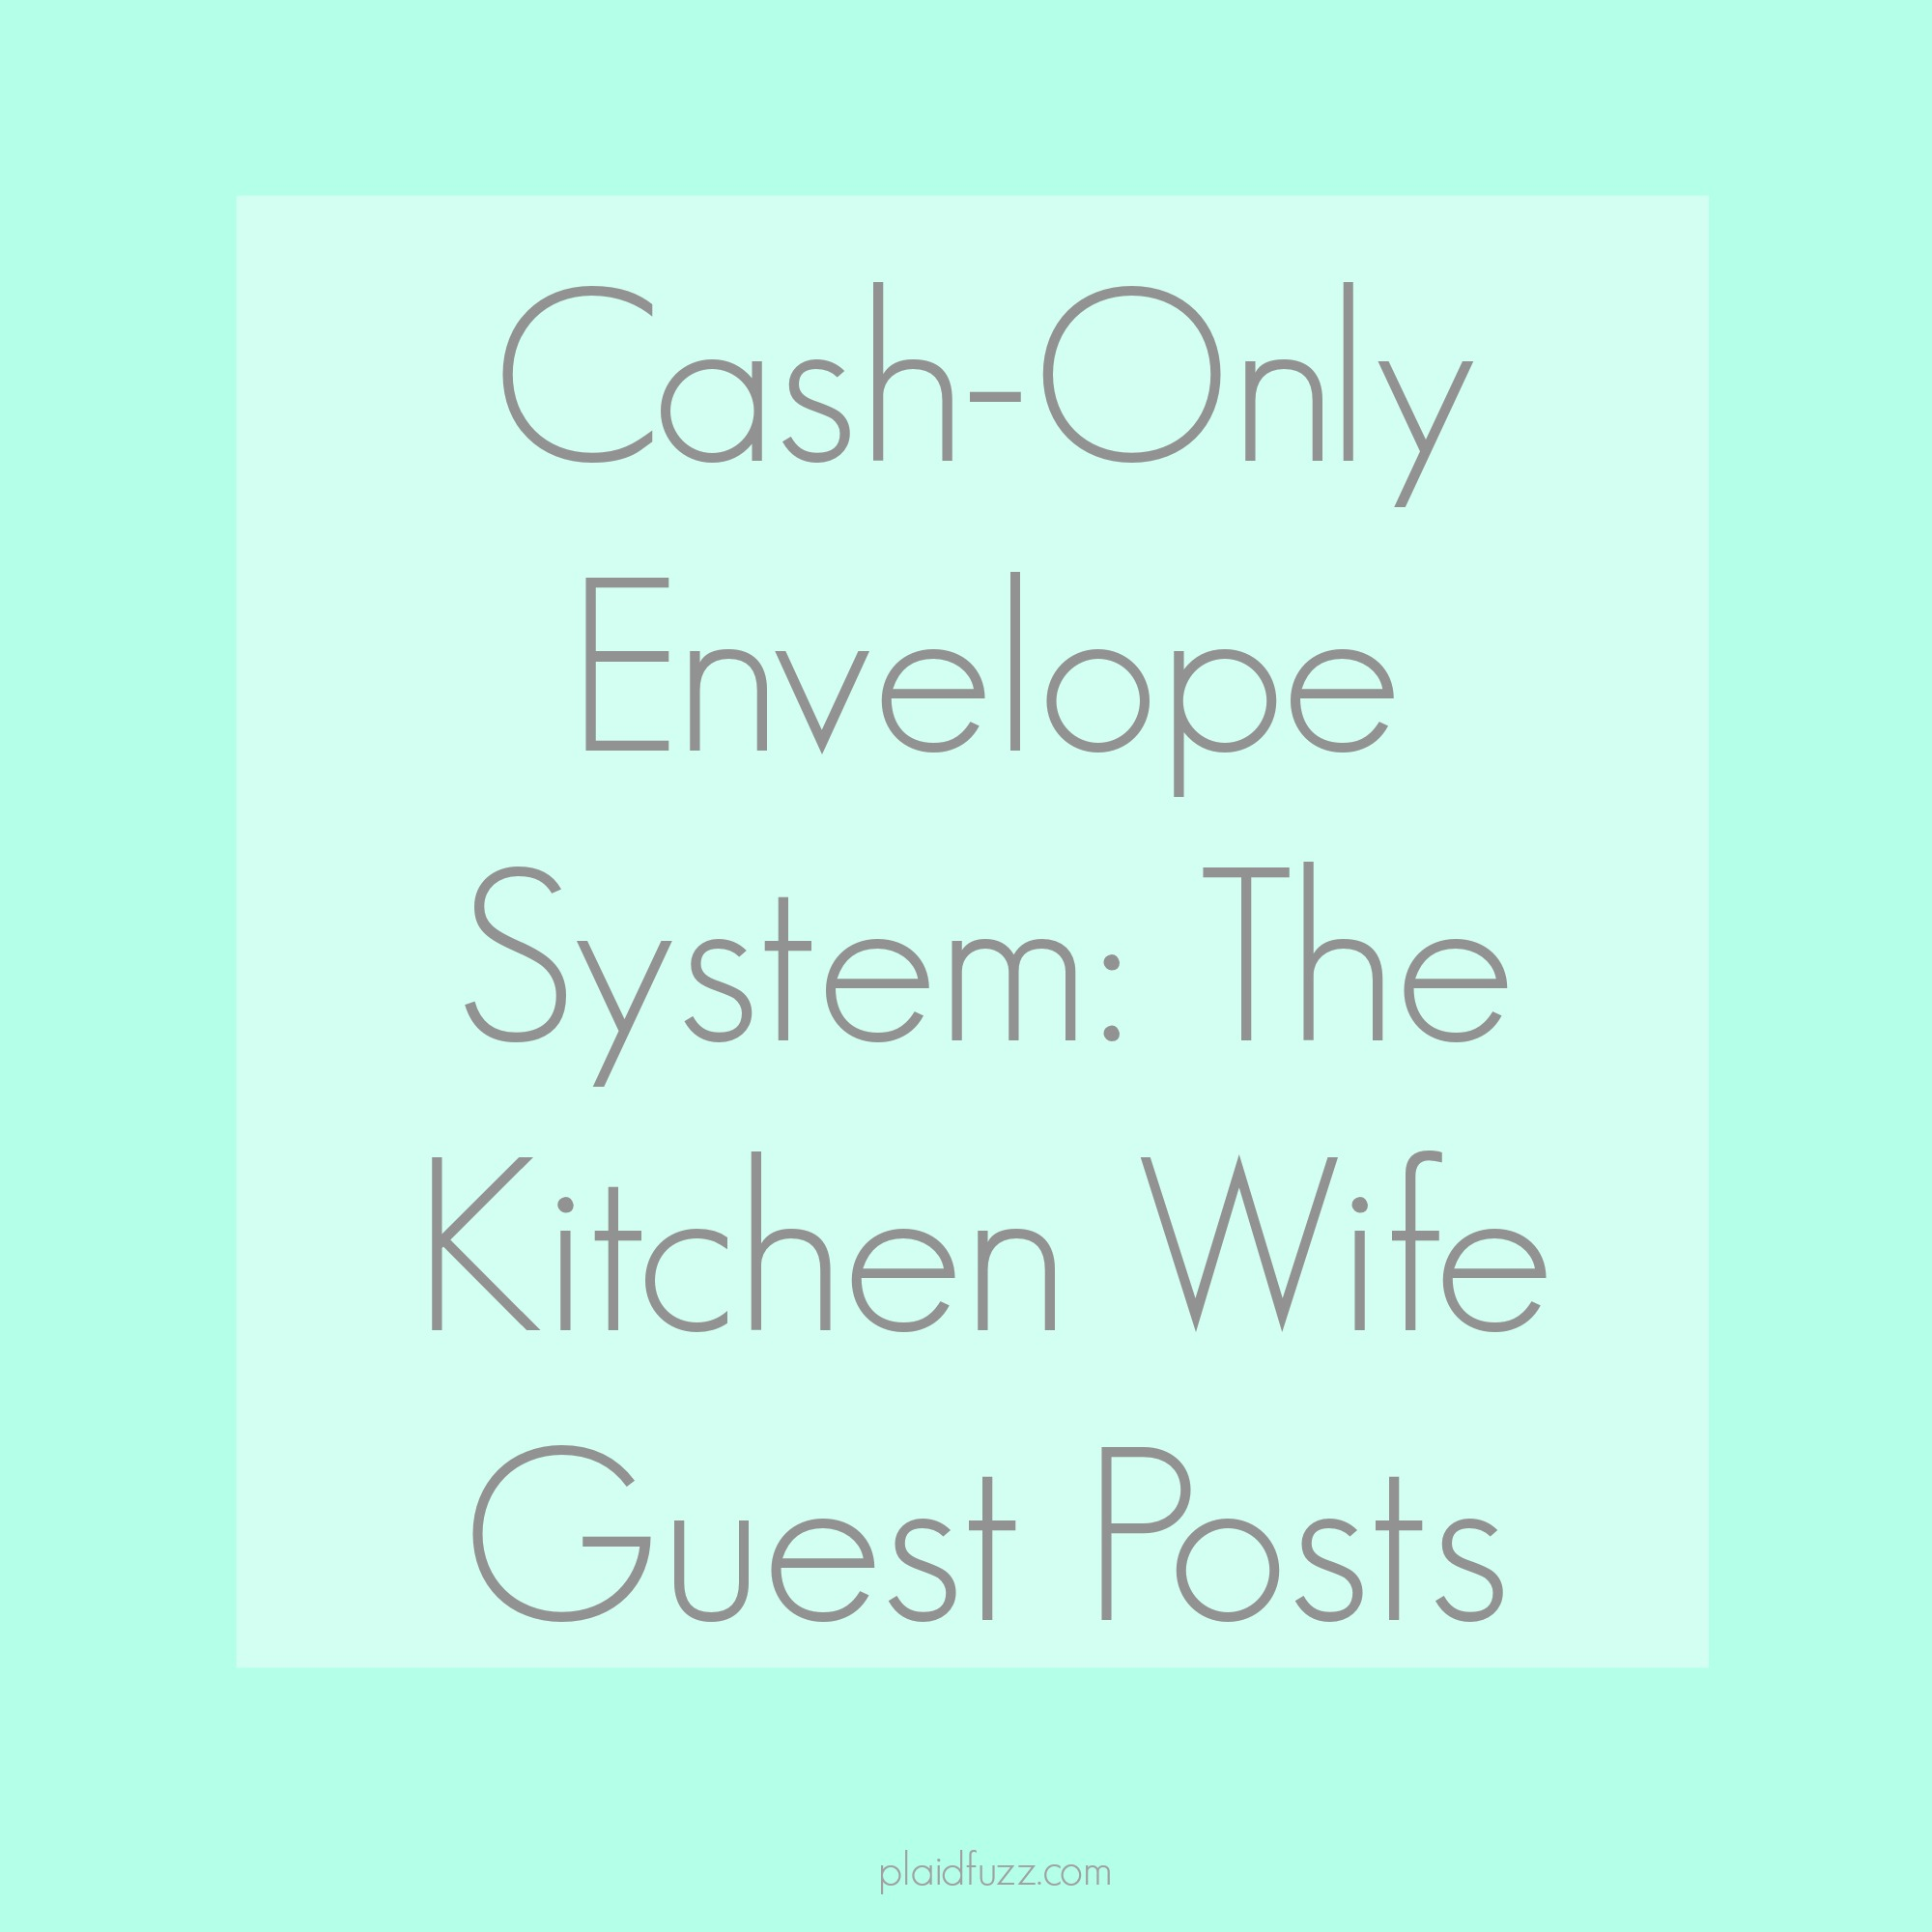 Guest Post: The Kitchen Wife Goes To A Cash-Only Lifestyle